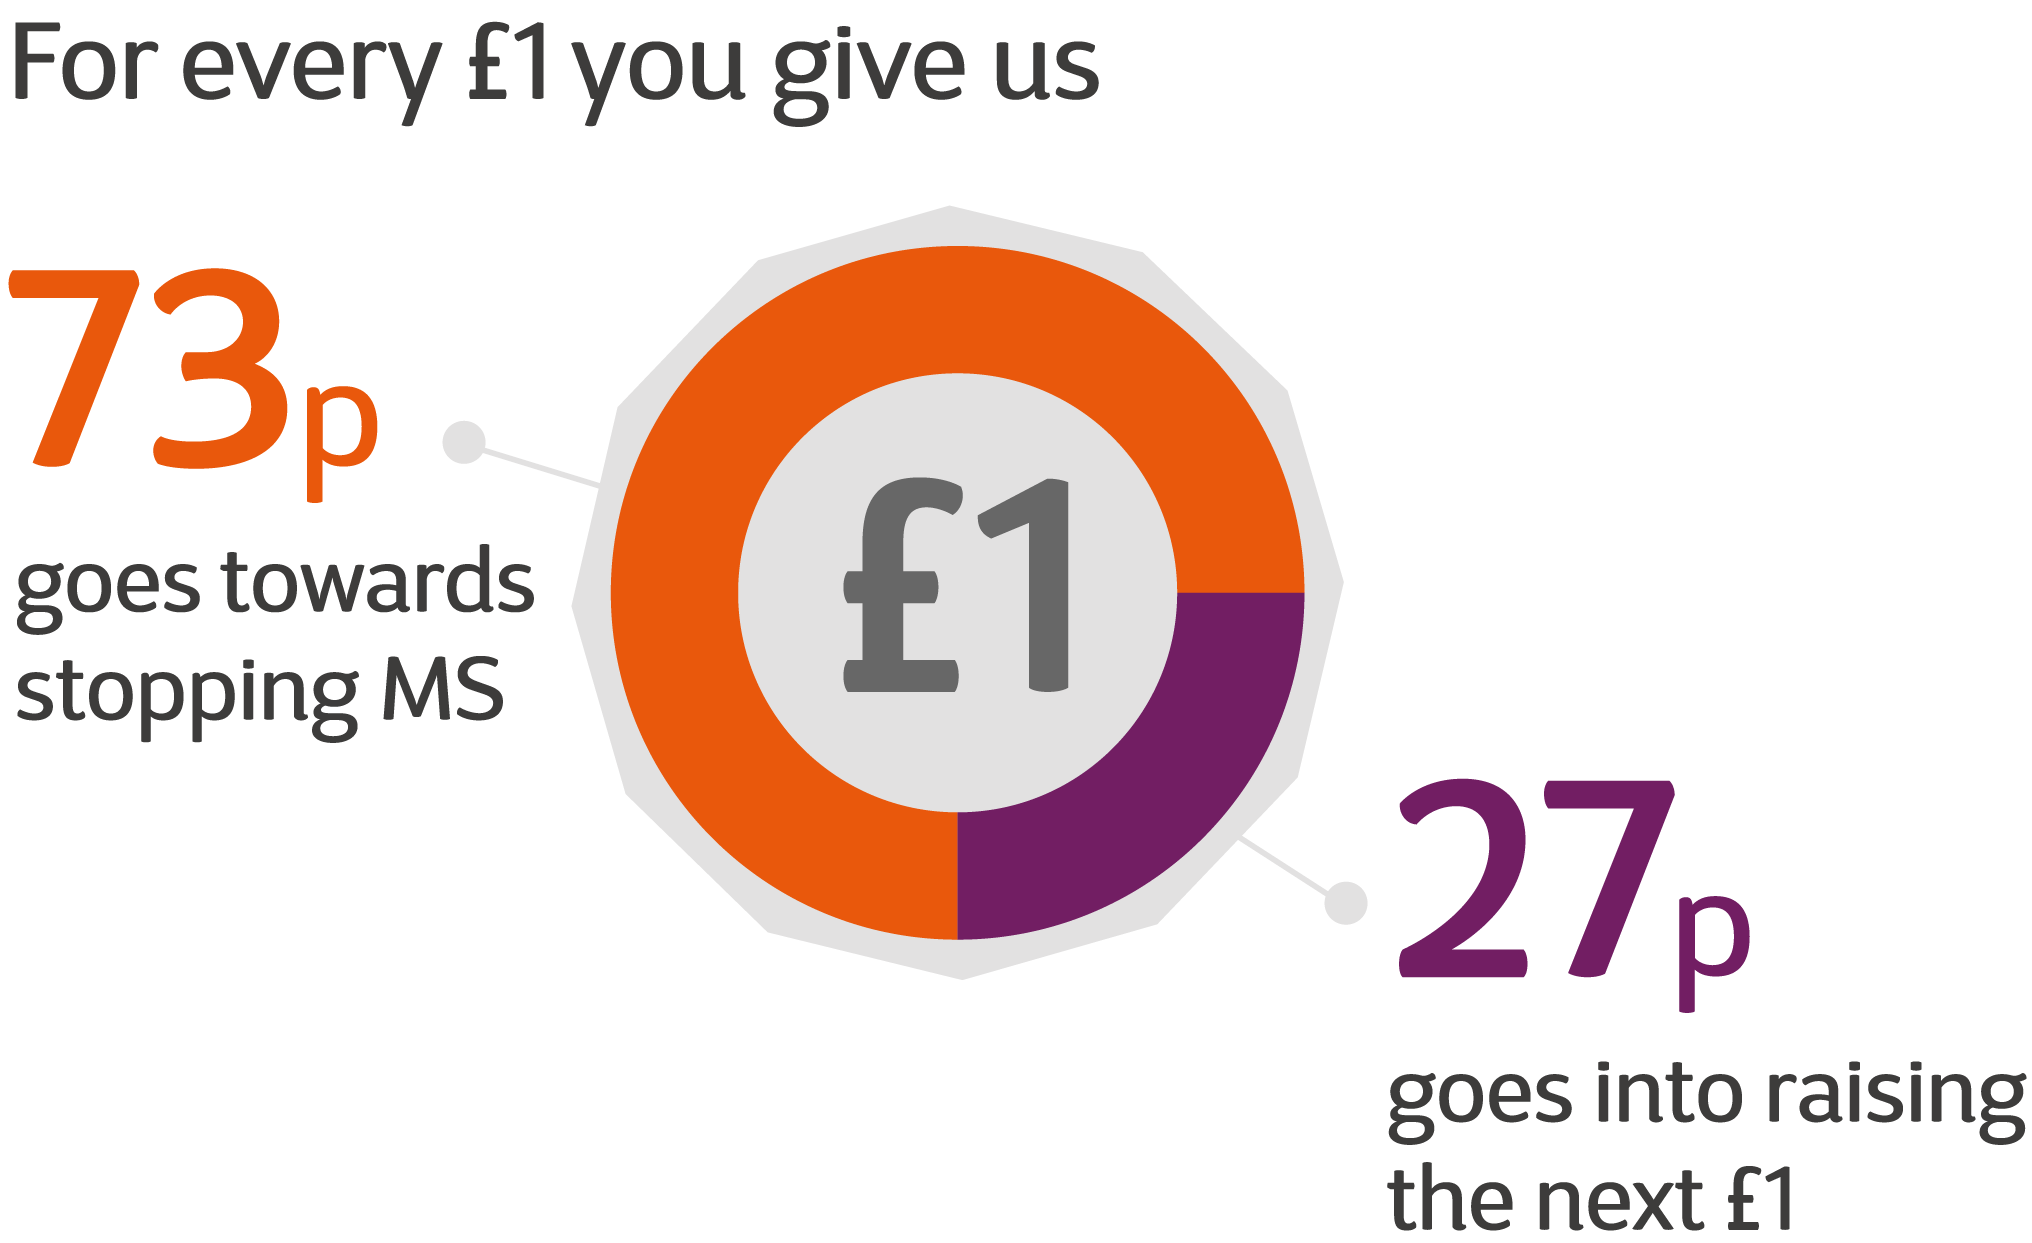 For every £1 you give us 73p goes towards stopping MS. 27p goes into raising the next £1